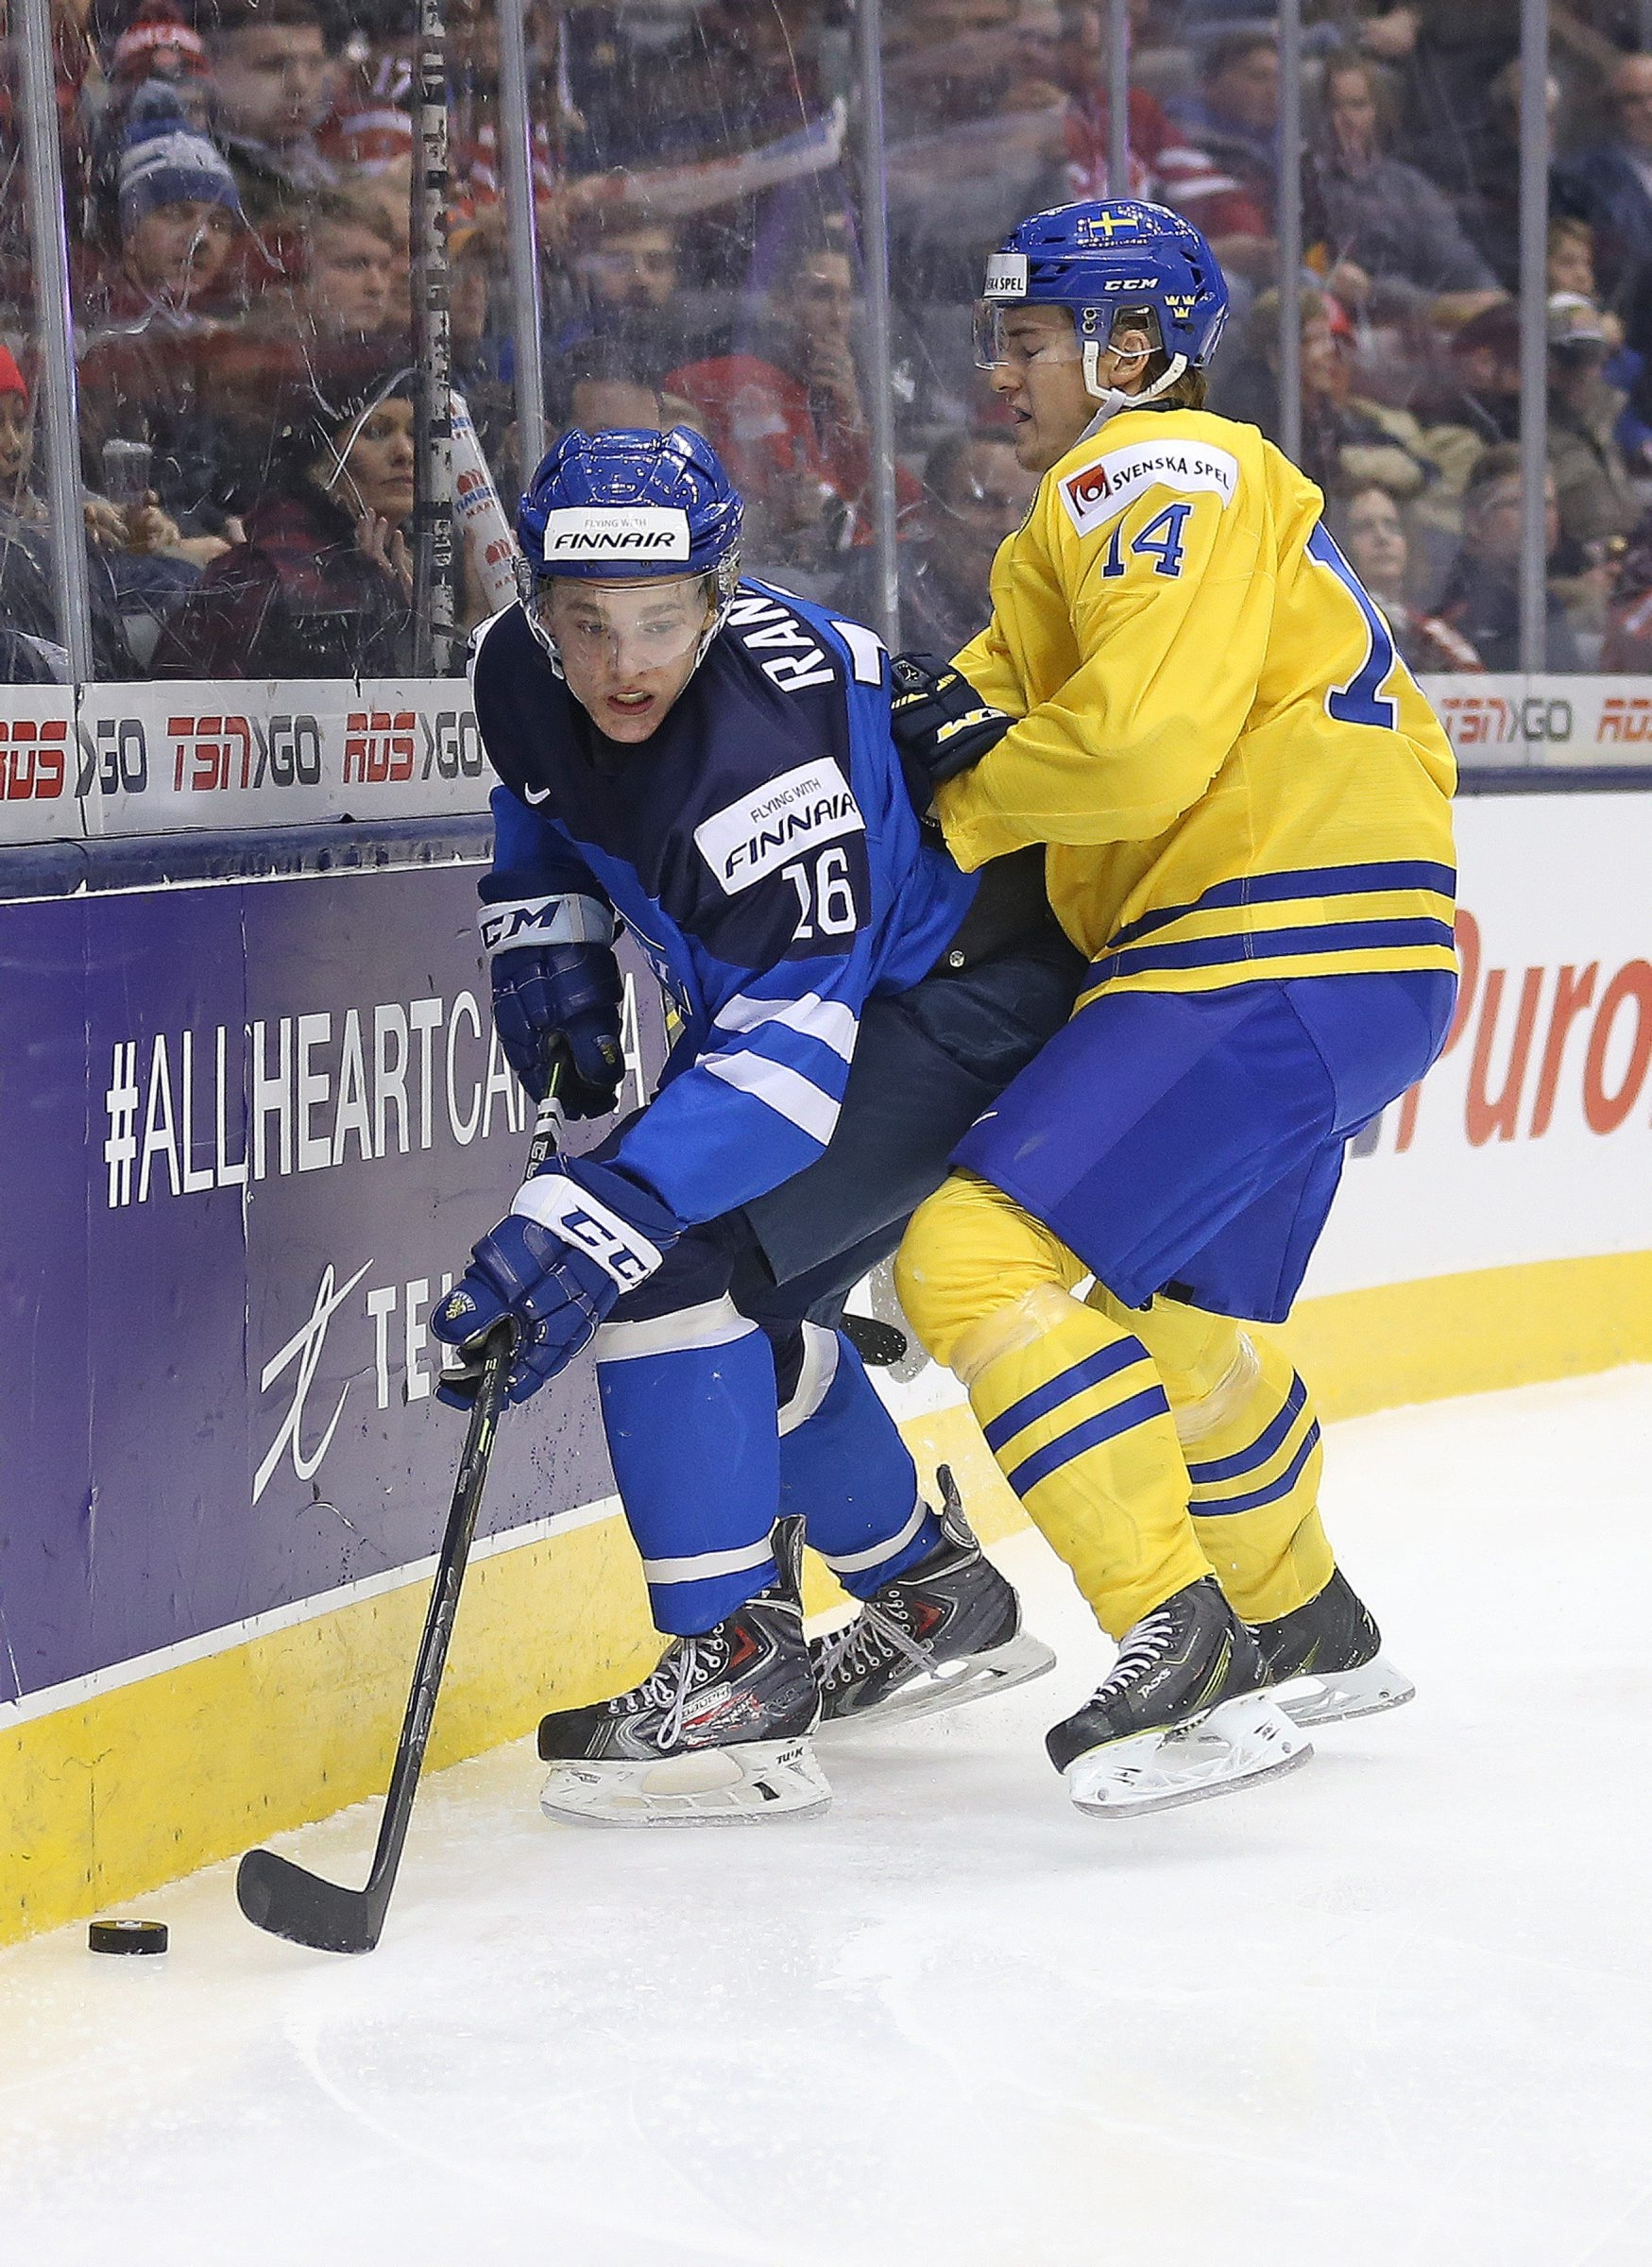 Mikko Rantanen of Finland, right, can use his size to his advantage as well as create offensive chances.